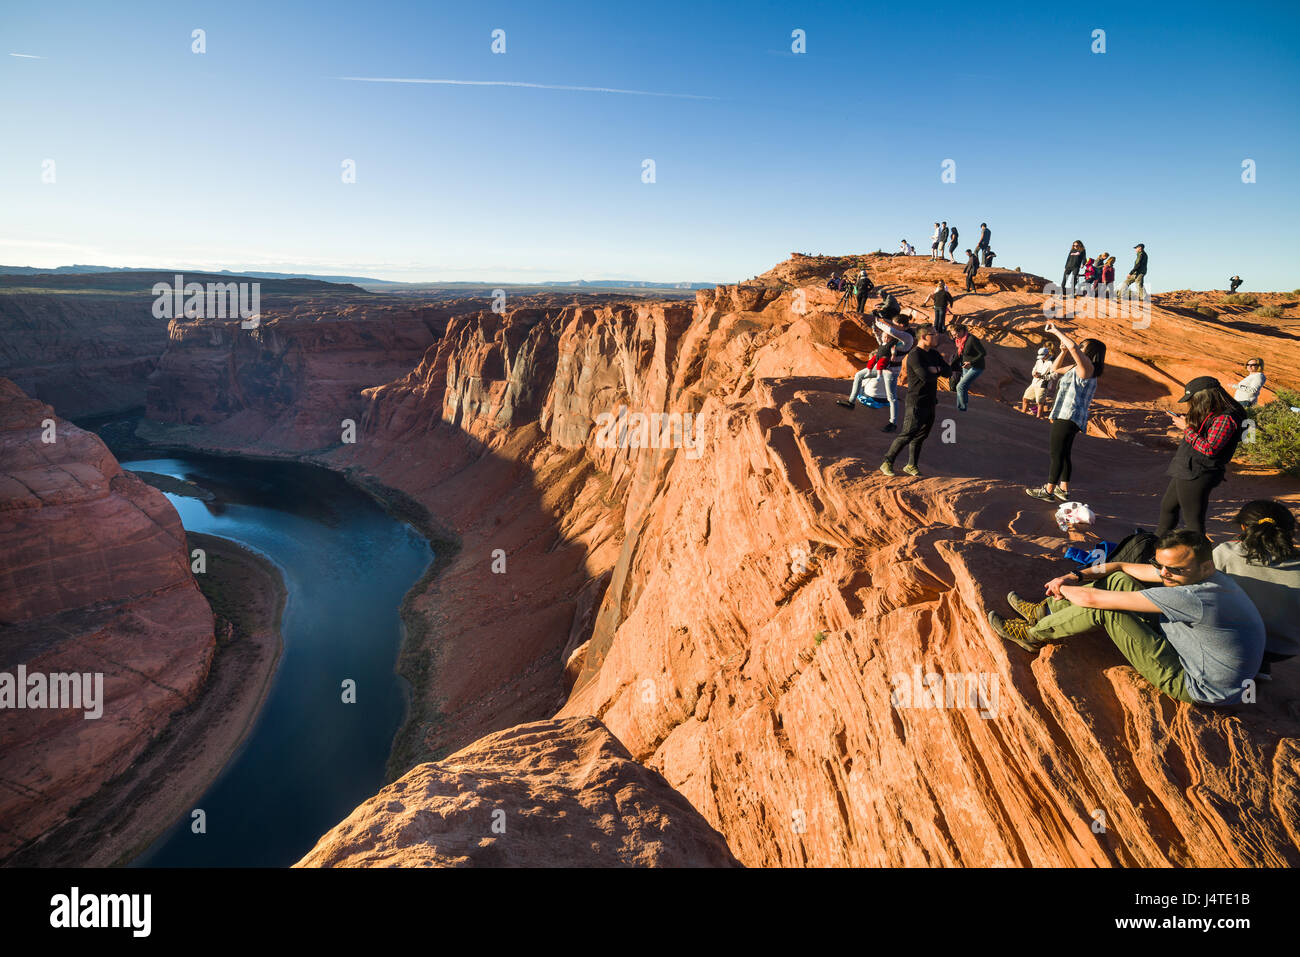 tourists-admiring-the-view-at-horseshoe-